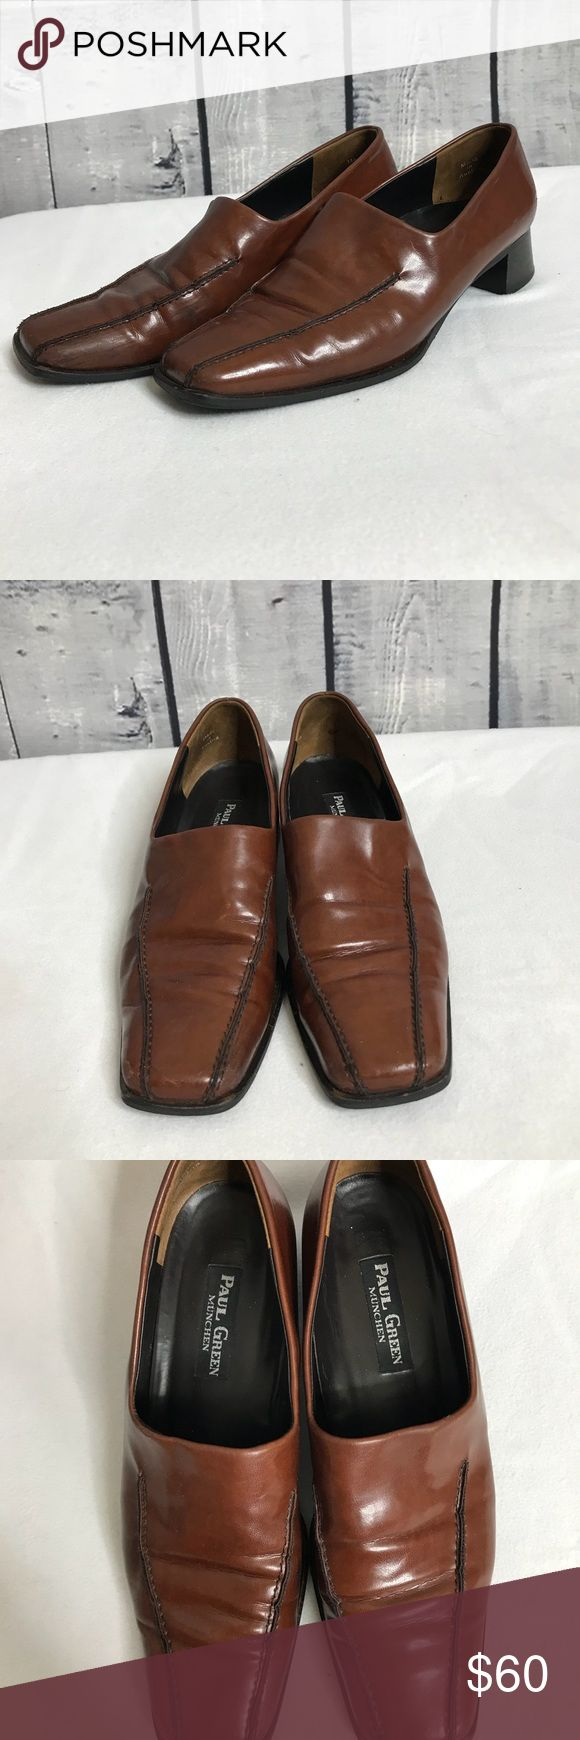 Vintage ⚜️ Paul Green Handmade Leather Shoes Beautiful soft and very comfy!  These slip on shoes have some Flaws in the front, (see photos) but they have a few years left in them!!  Beautiful mahogany color.  Size is 5.5 = 7.5 (tried them on and if you are 7.5 they fit you!) Paul Green shoes are made to last, this pair is made in Austria. They are one piece of leather only one seem!!  Amazing construction.   Amazing price given these puppies go for over $150  Make me an offer ☺️🤝 Paul Green…